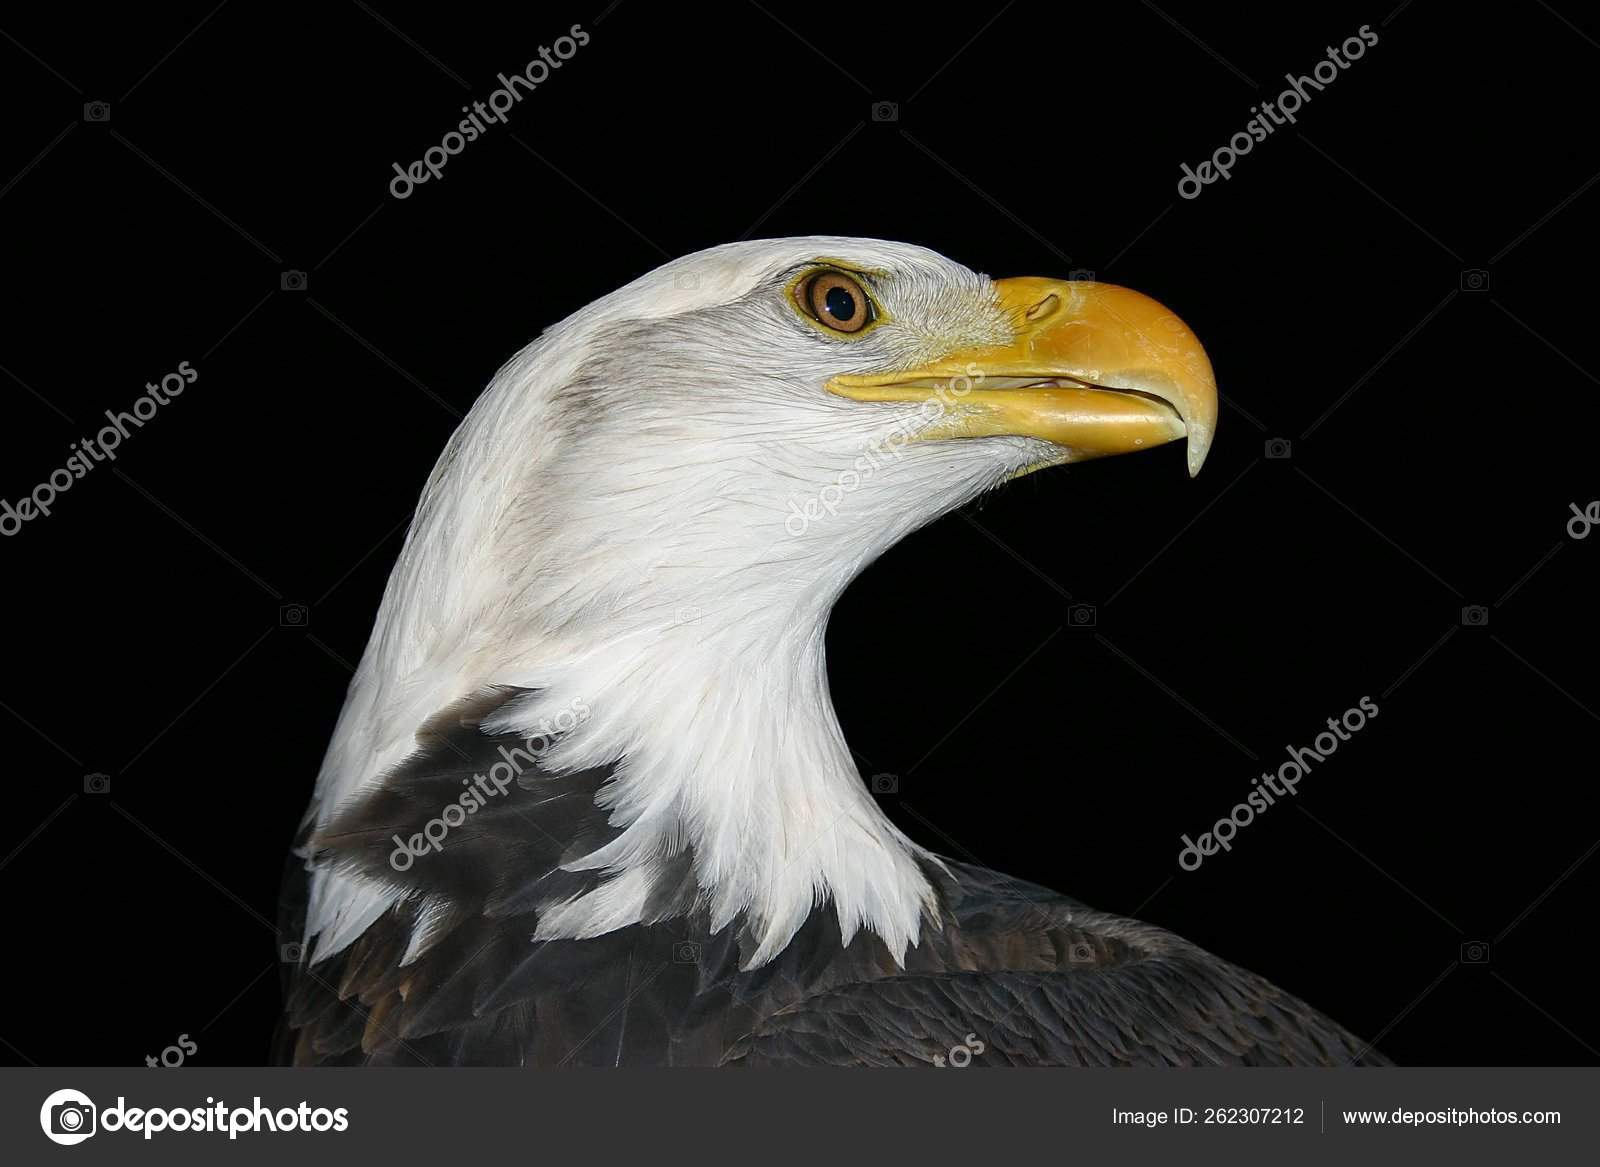 Very Nice Profile Beautiful Year Old Bald Eagle Stock Photo C Yayimages 262307212